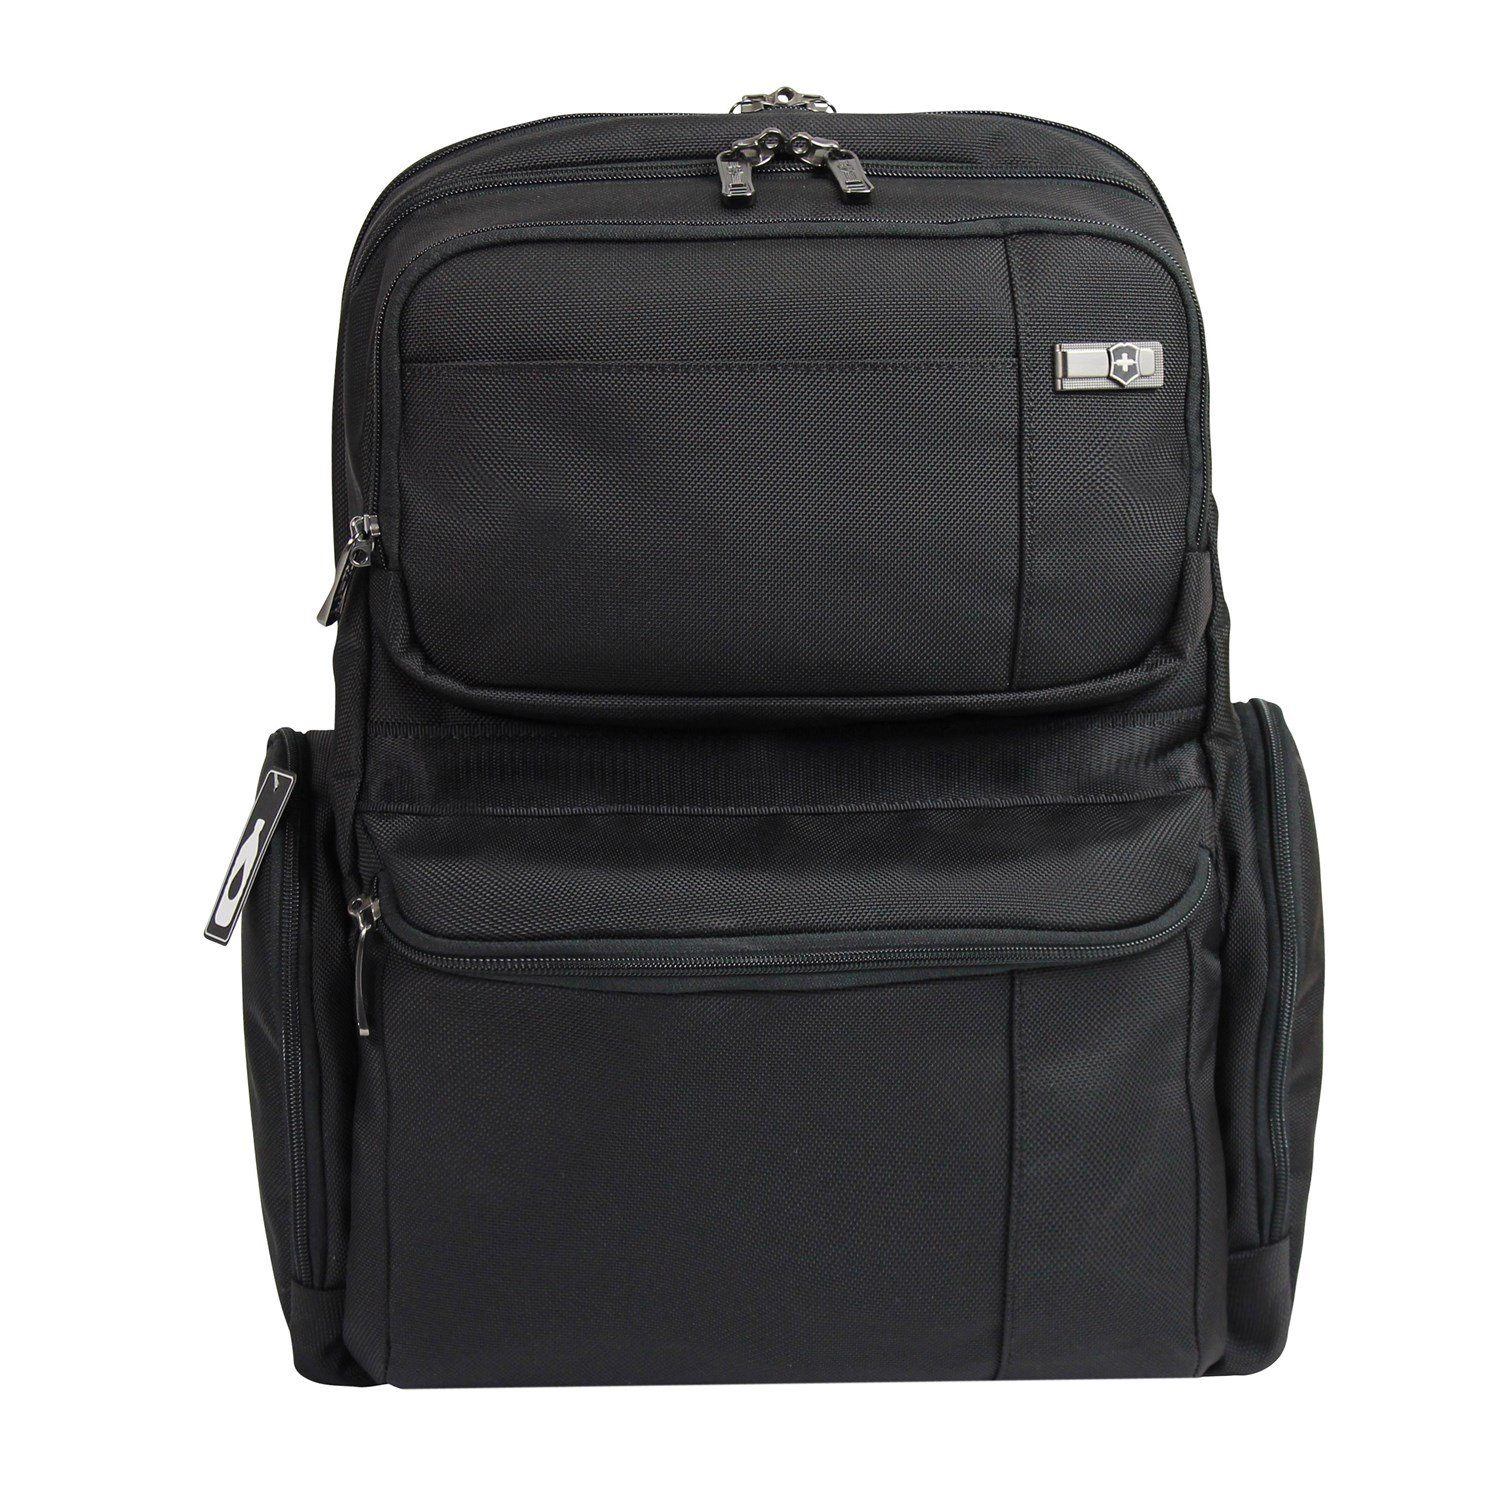 Victorinox Architecture 3.0 Business Rucksack 43cm Laptopfach